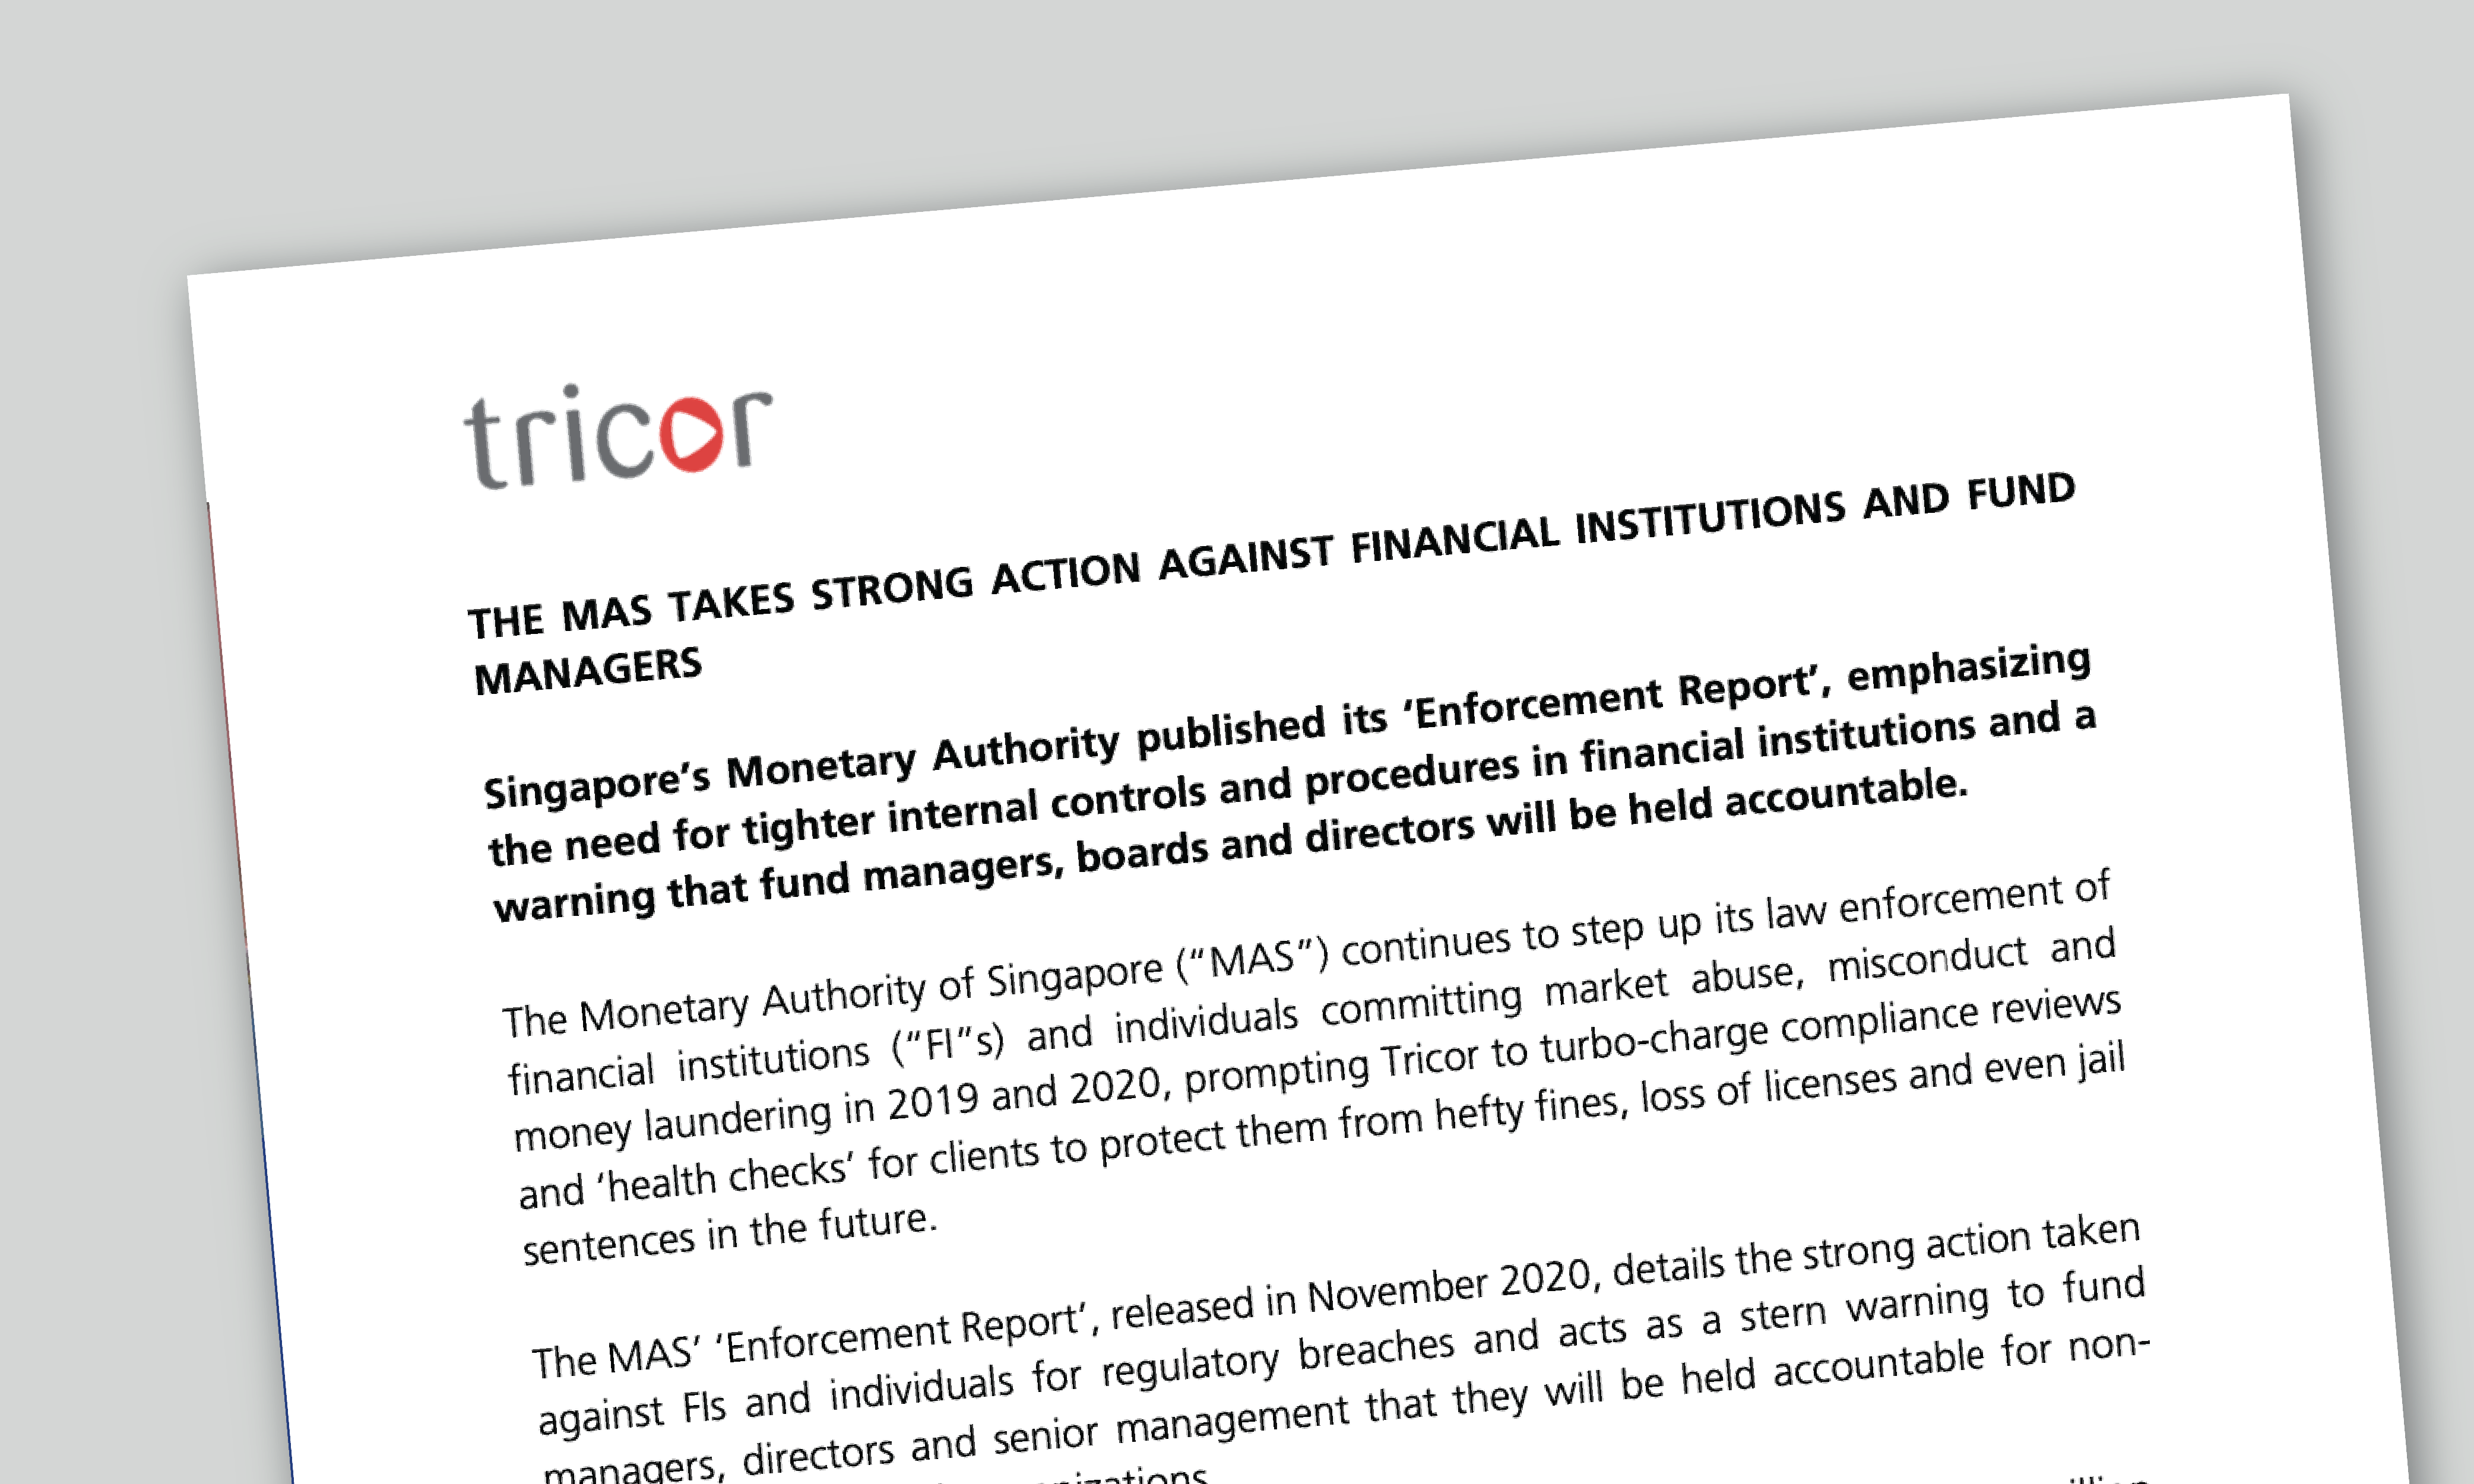 The MAS Takes Strong Action Against Financial Institutions and Fund Managers